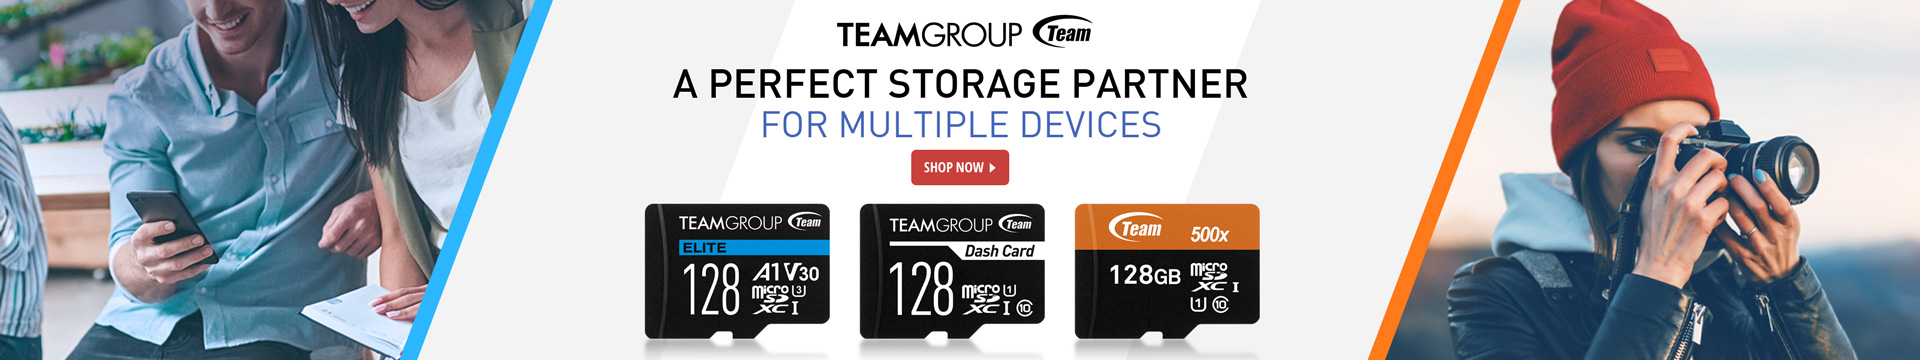 TEAMGROUP A PERFECT STORAGE PARTNER